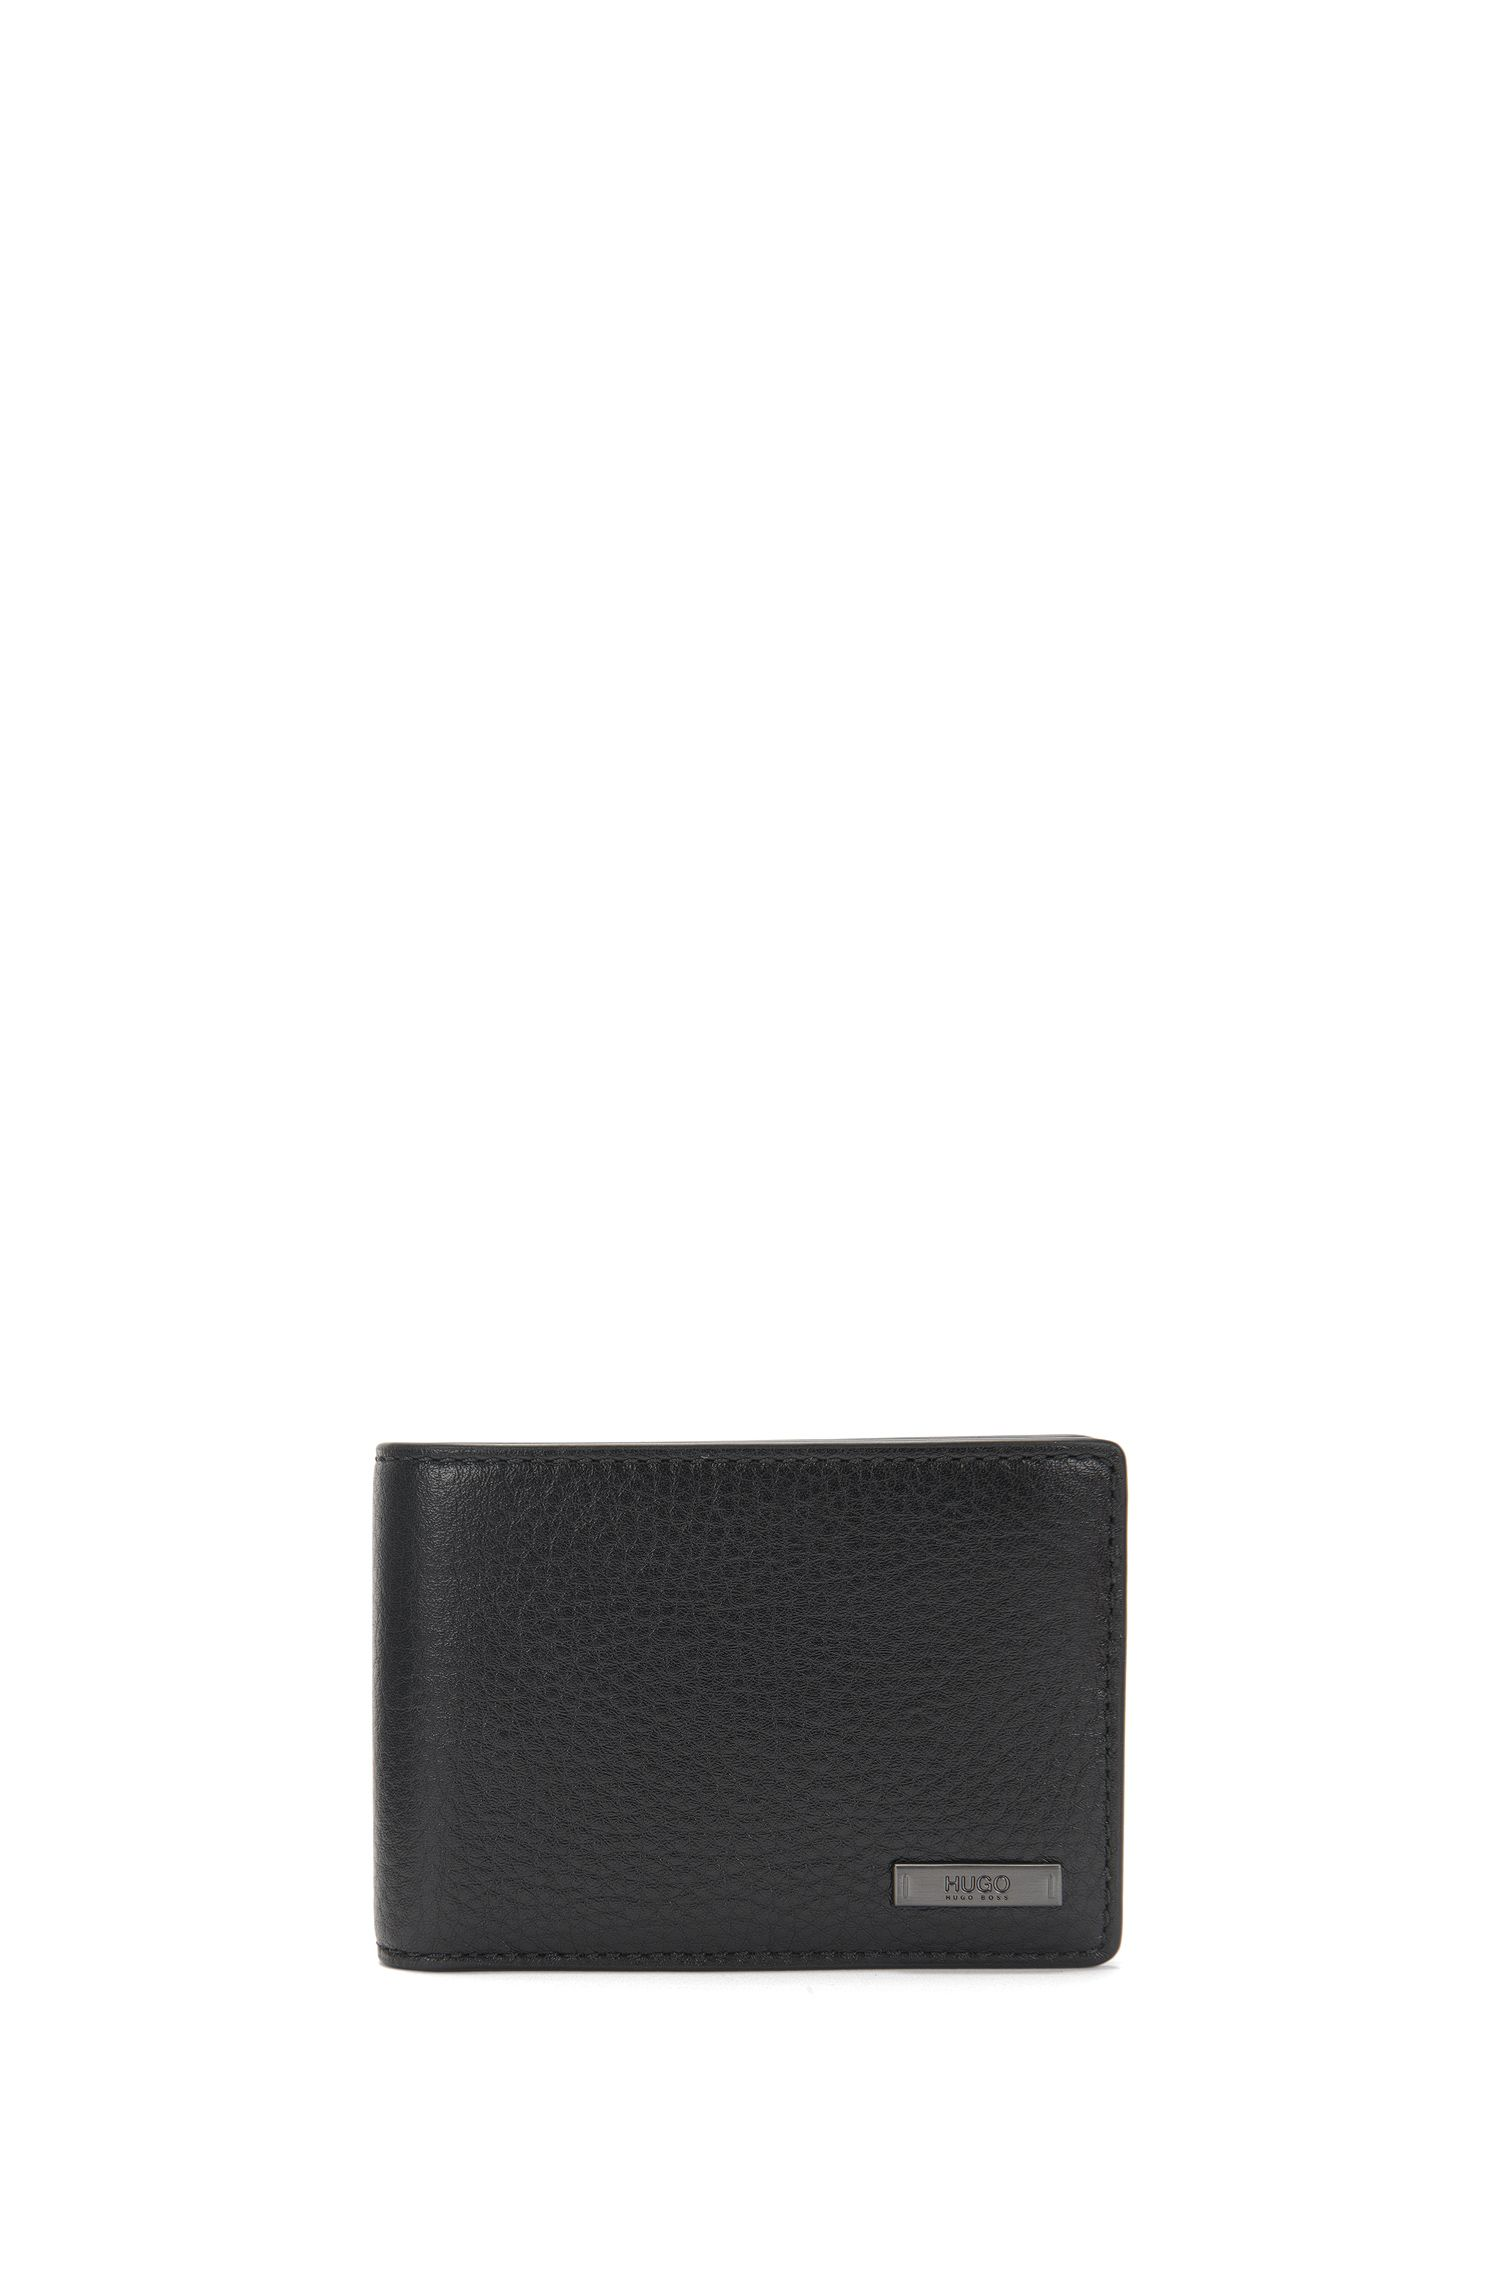 Leather wallet with gunmetal hardware